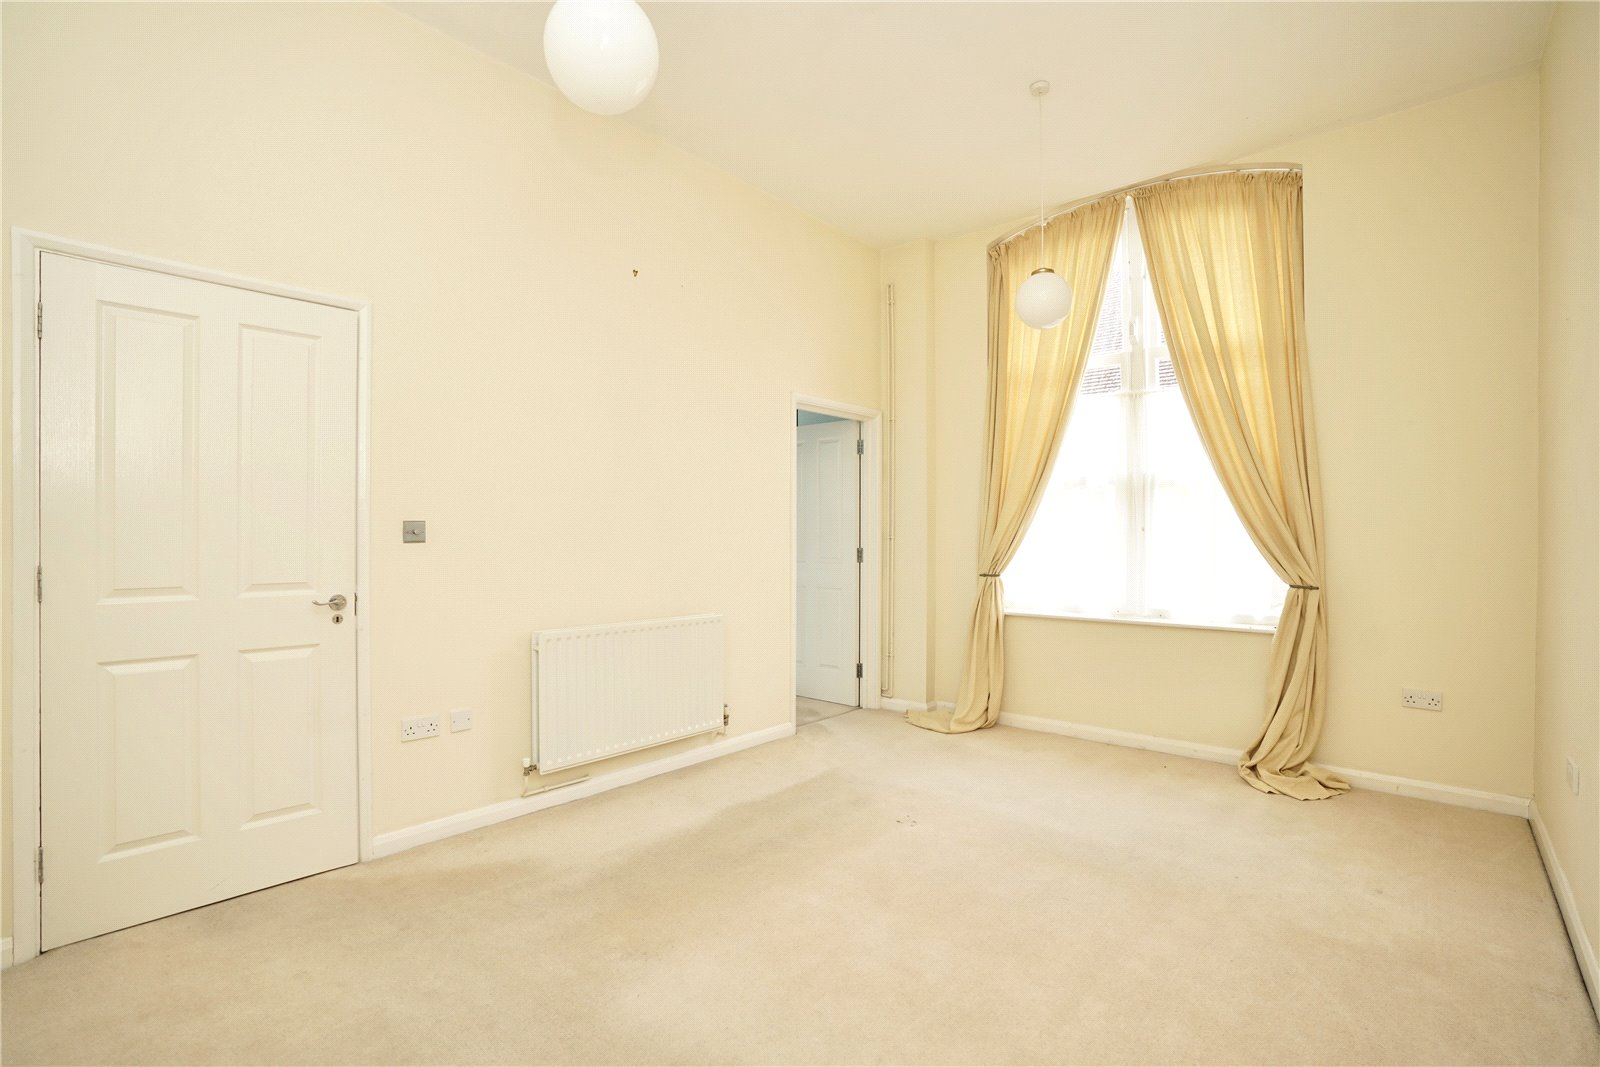 3 bed apartment for sale in Chandlers Wharf, St. Neots  - Property Image 13